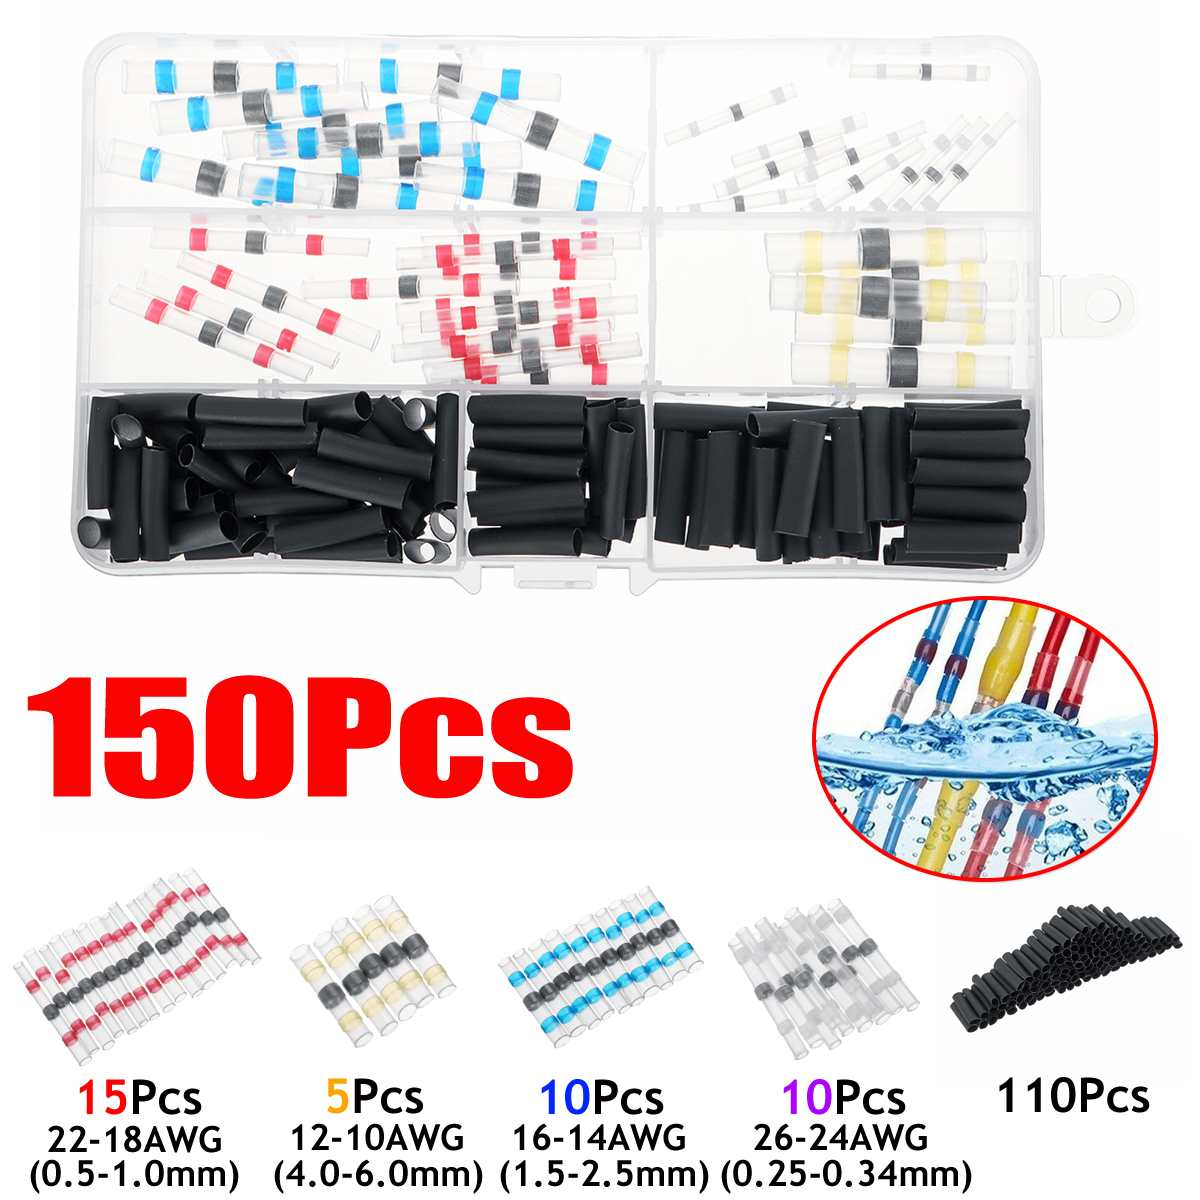 100/150pcs Heat Shrink Tubing Electrical Insulation Shrinkable Tubes 2:1 Electrical Wire Cable Wrap Assortment Sleeve Kit